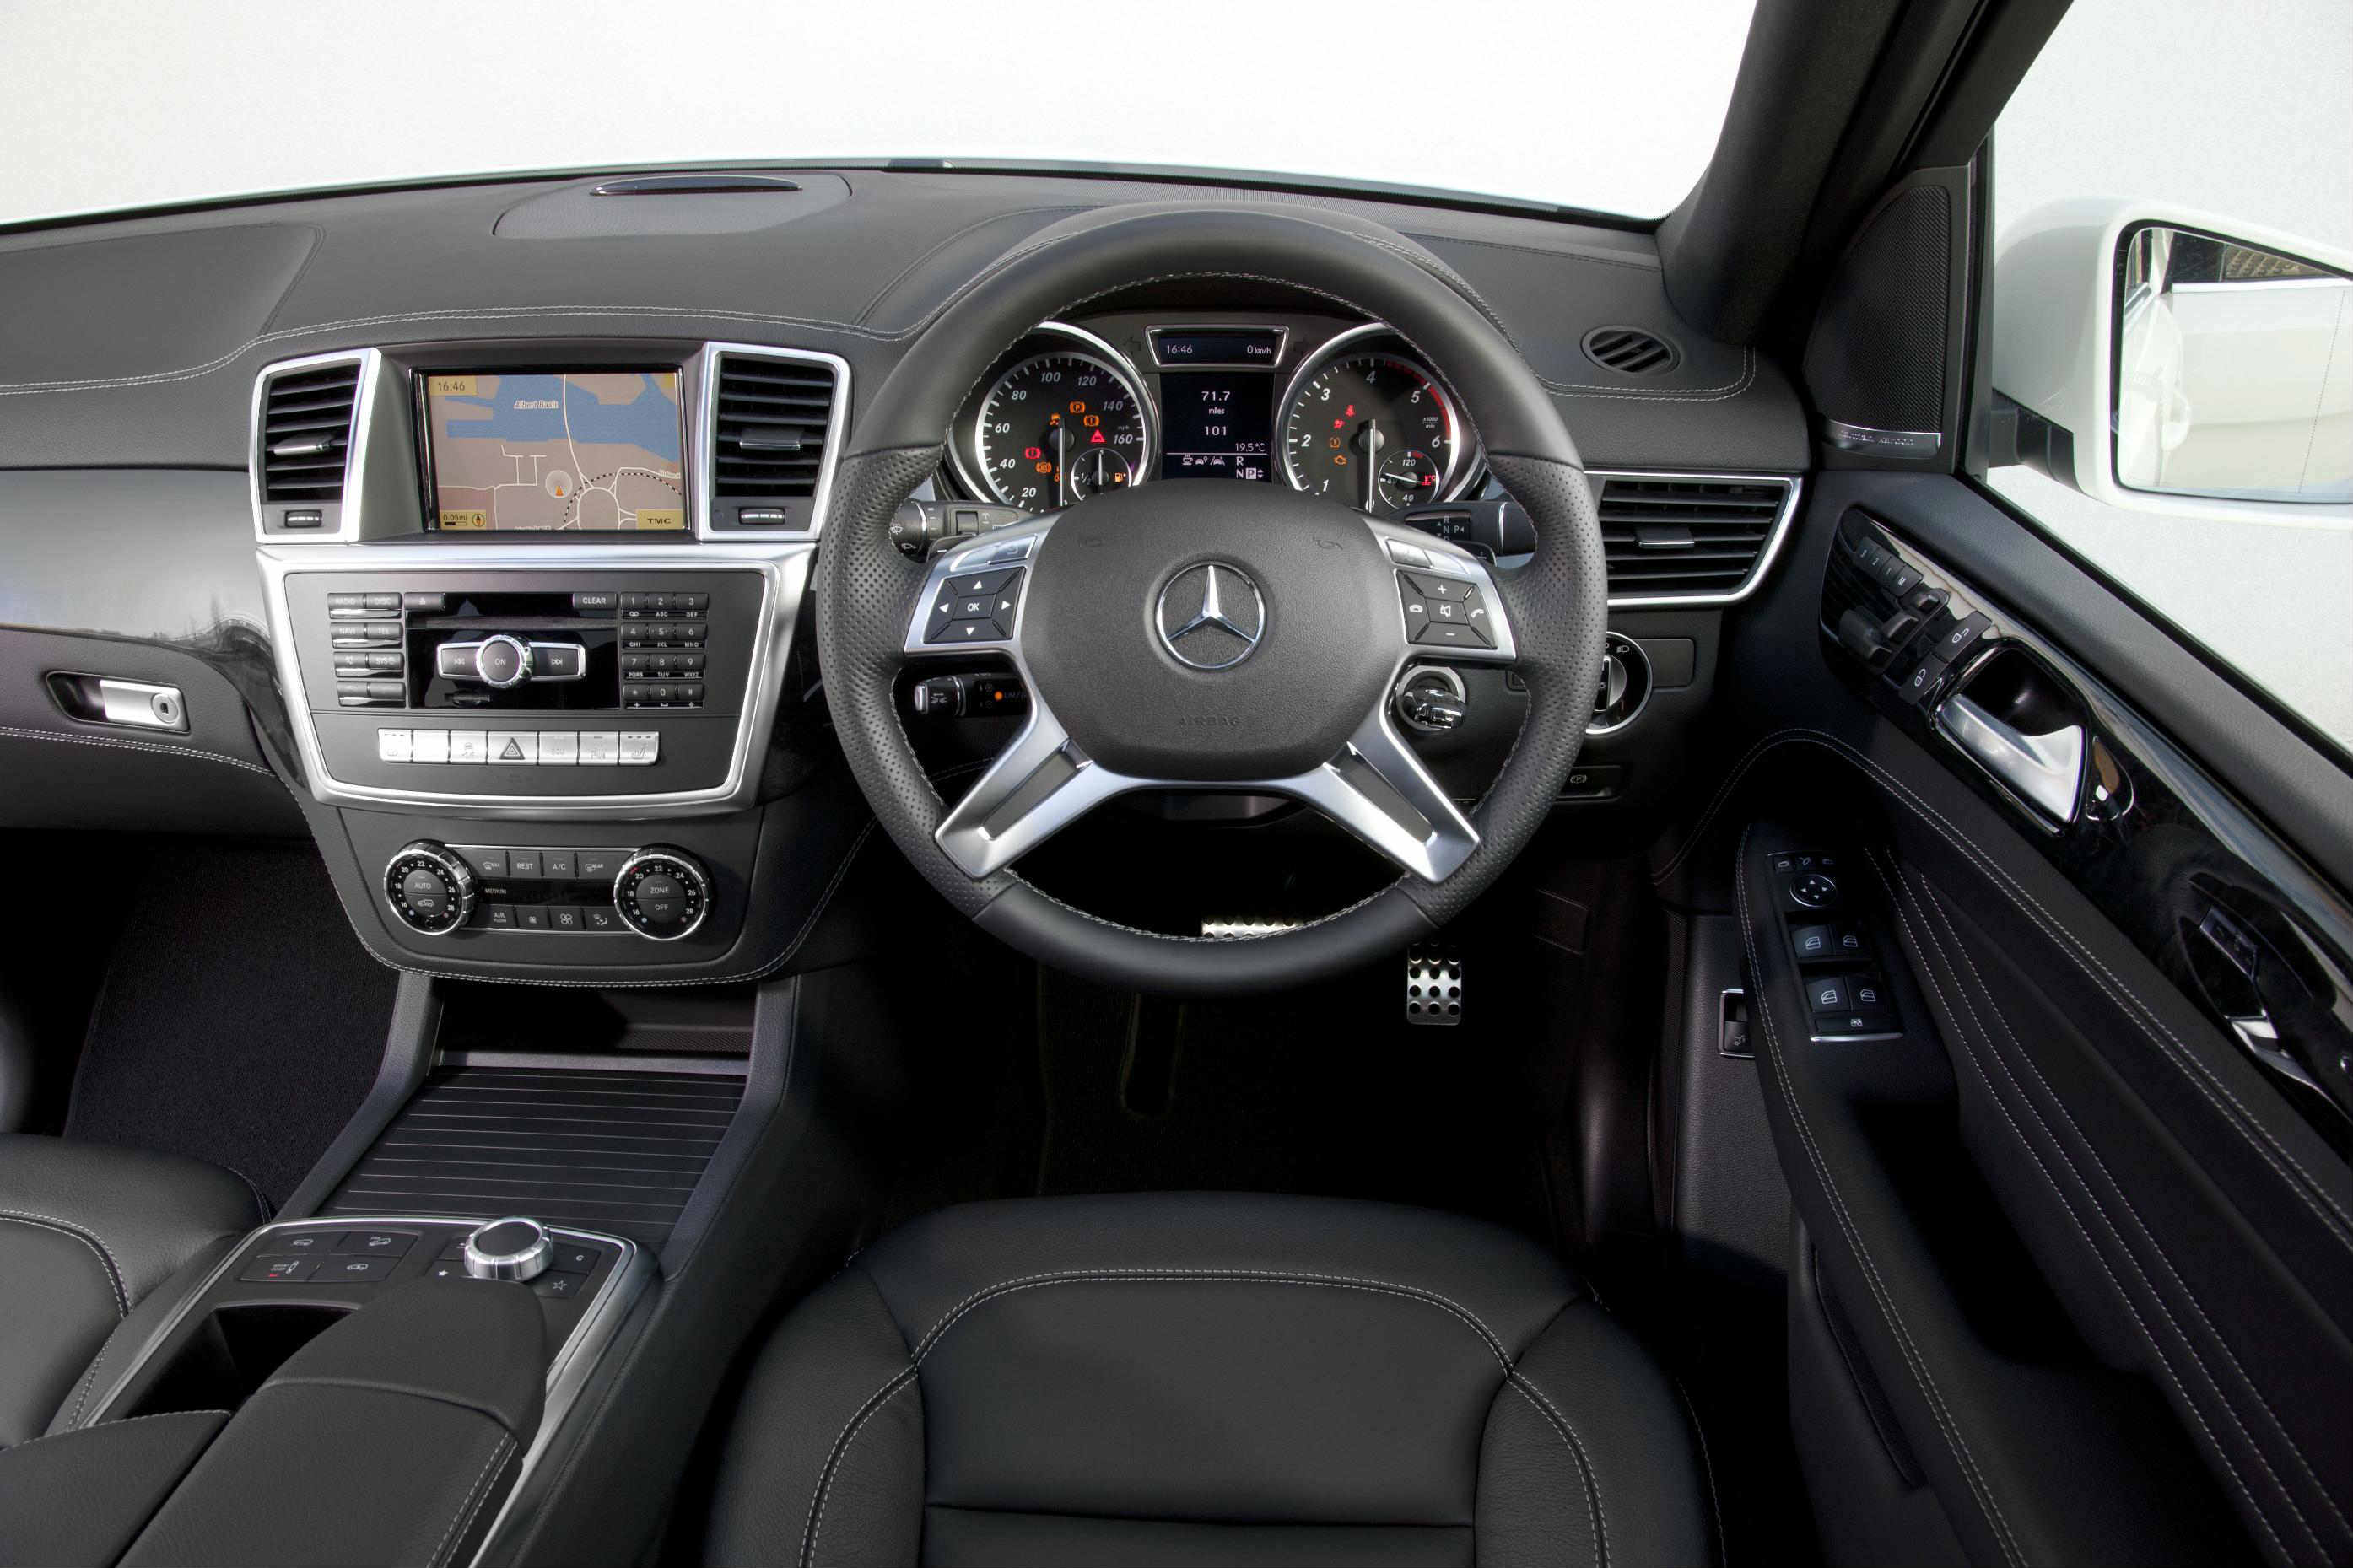 image of a mercedes-benz m class car interior